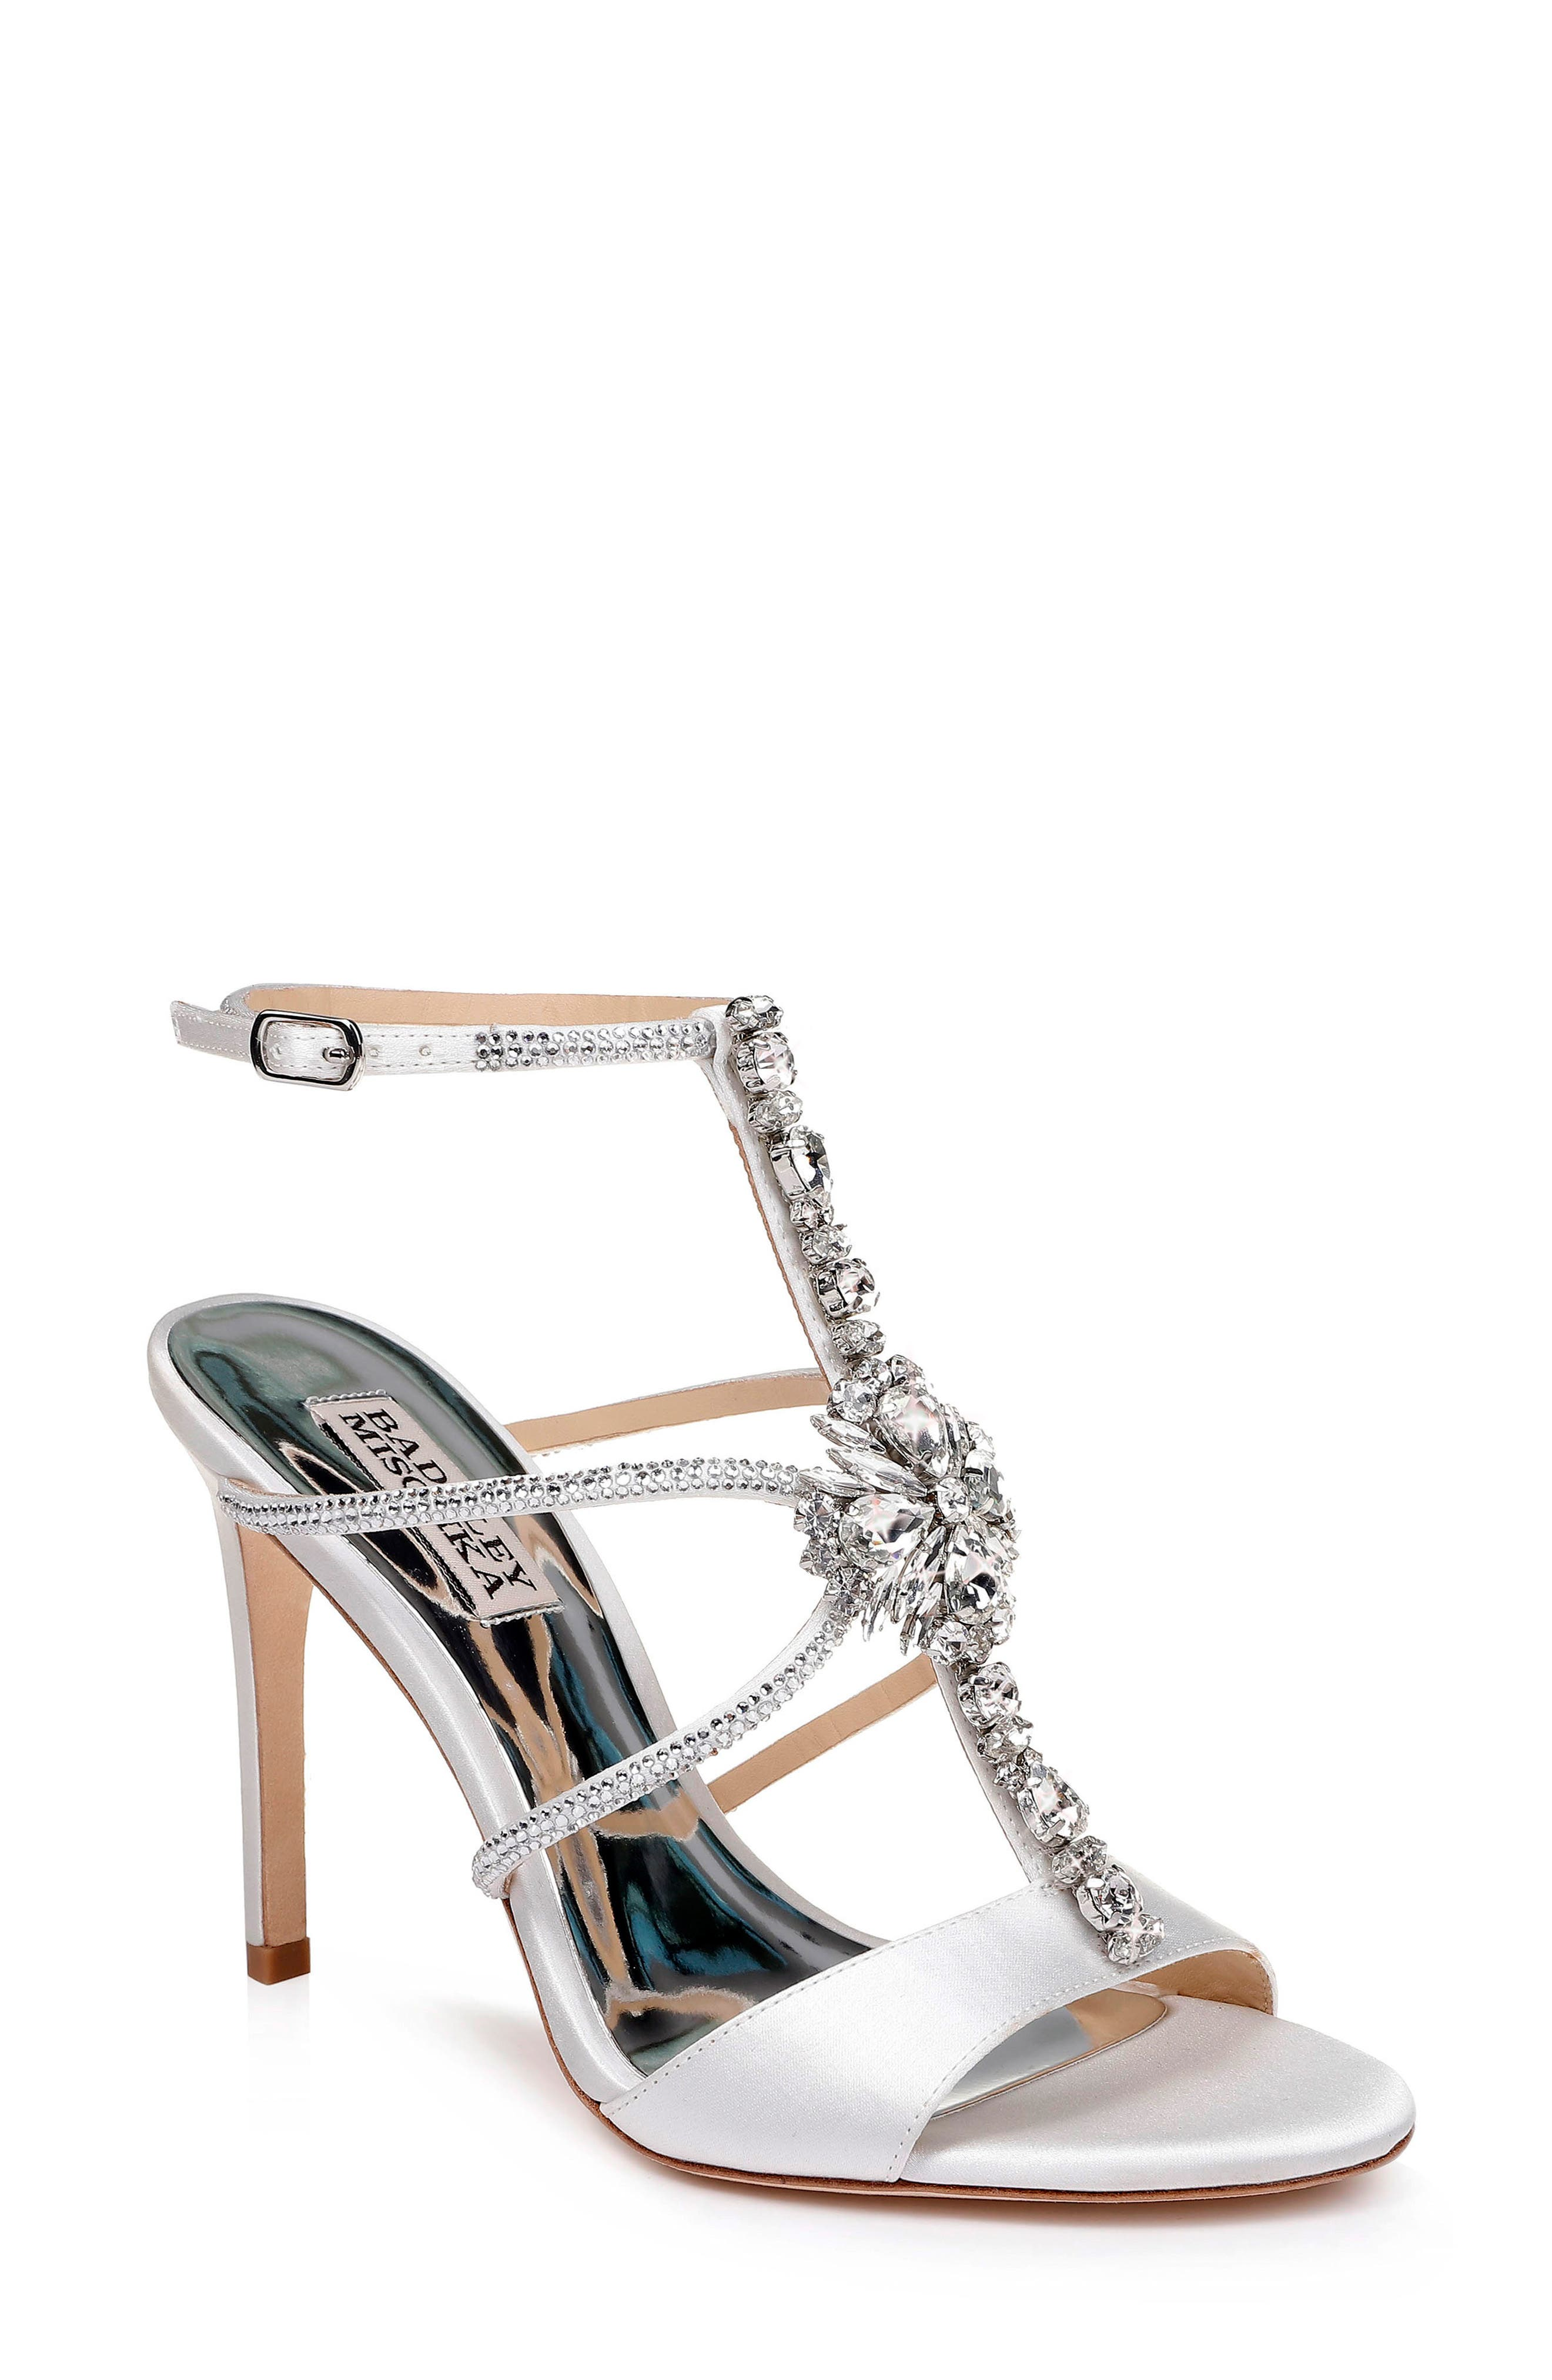 Badgley Mischka Faye Ankle Strap Sandal, White